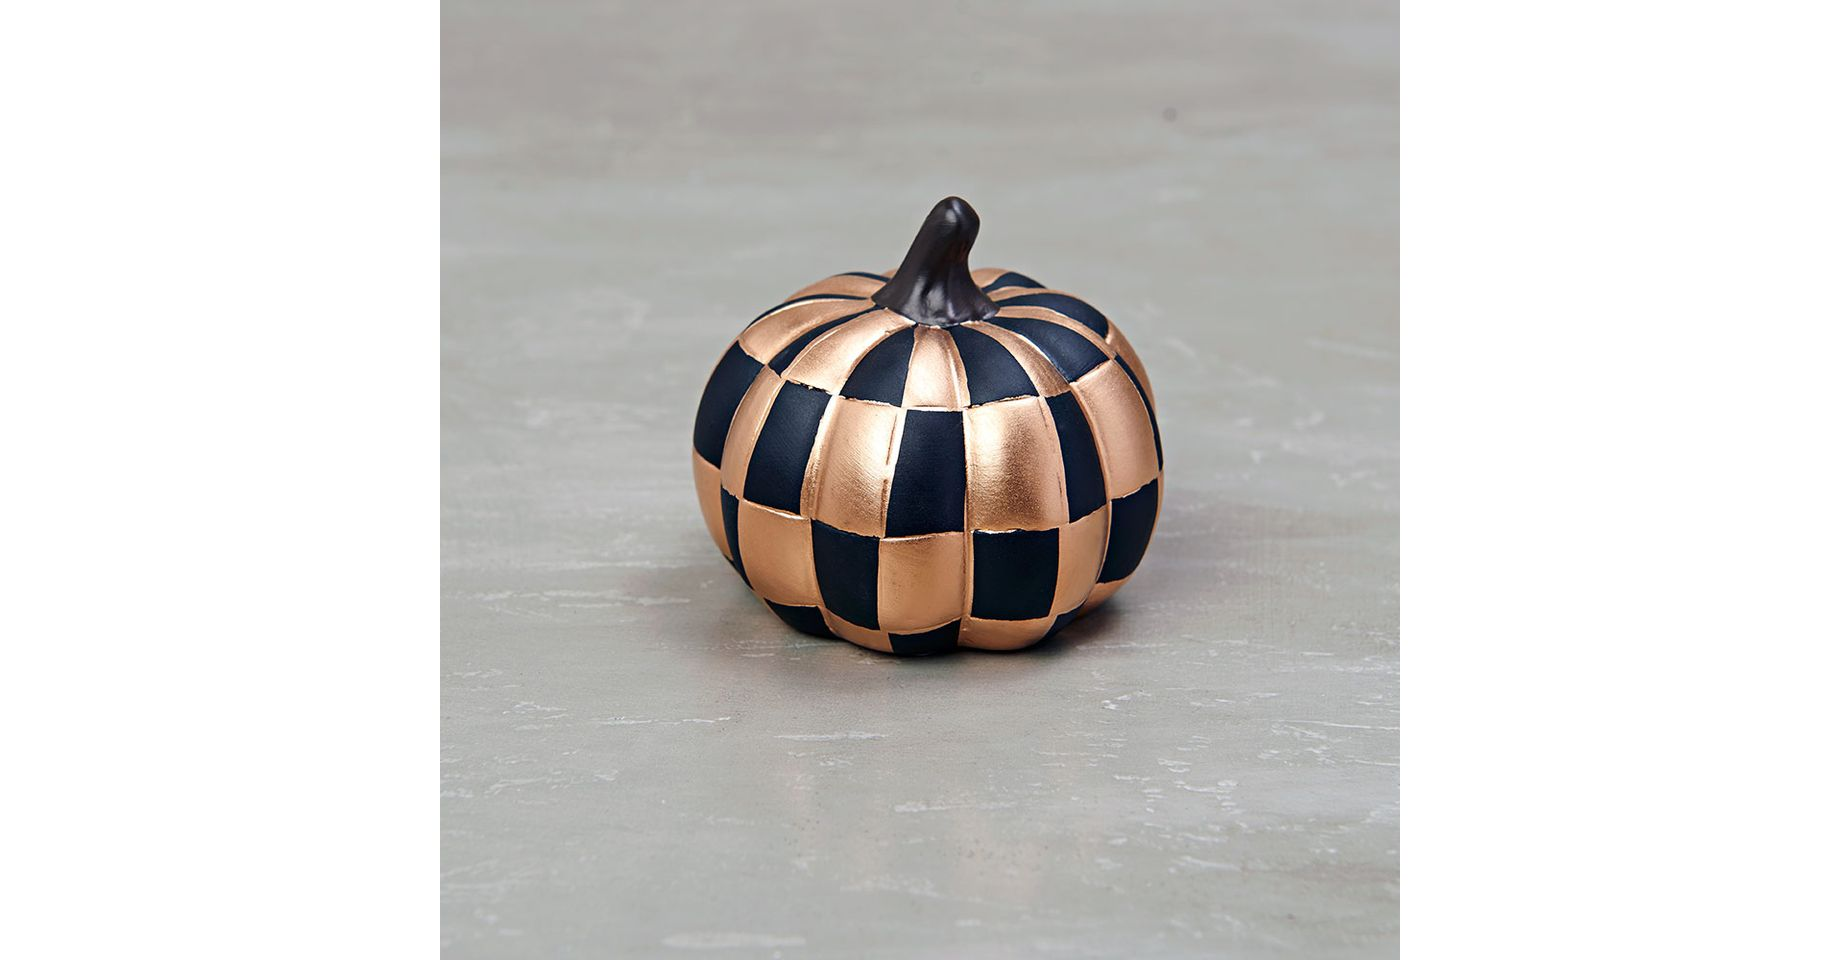 010106036_002_2-DECORATIVO-PUMPKIN